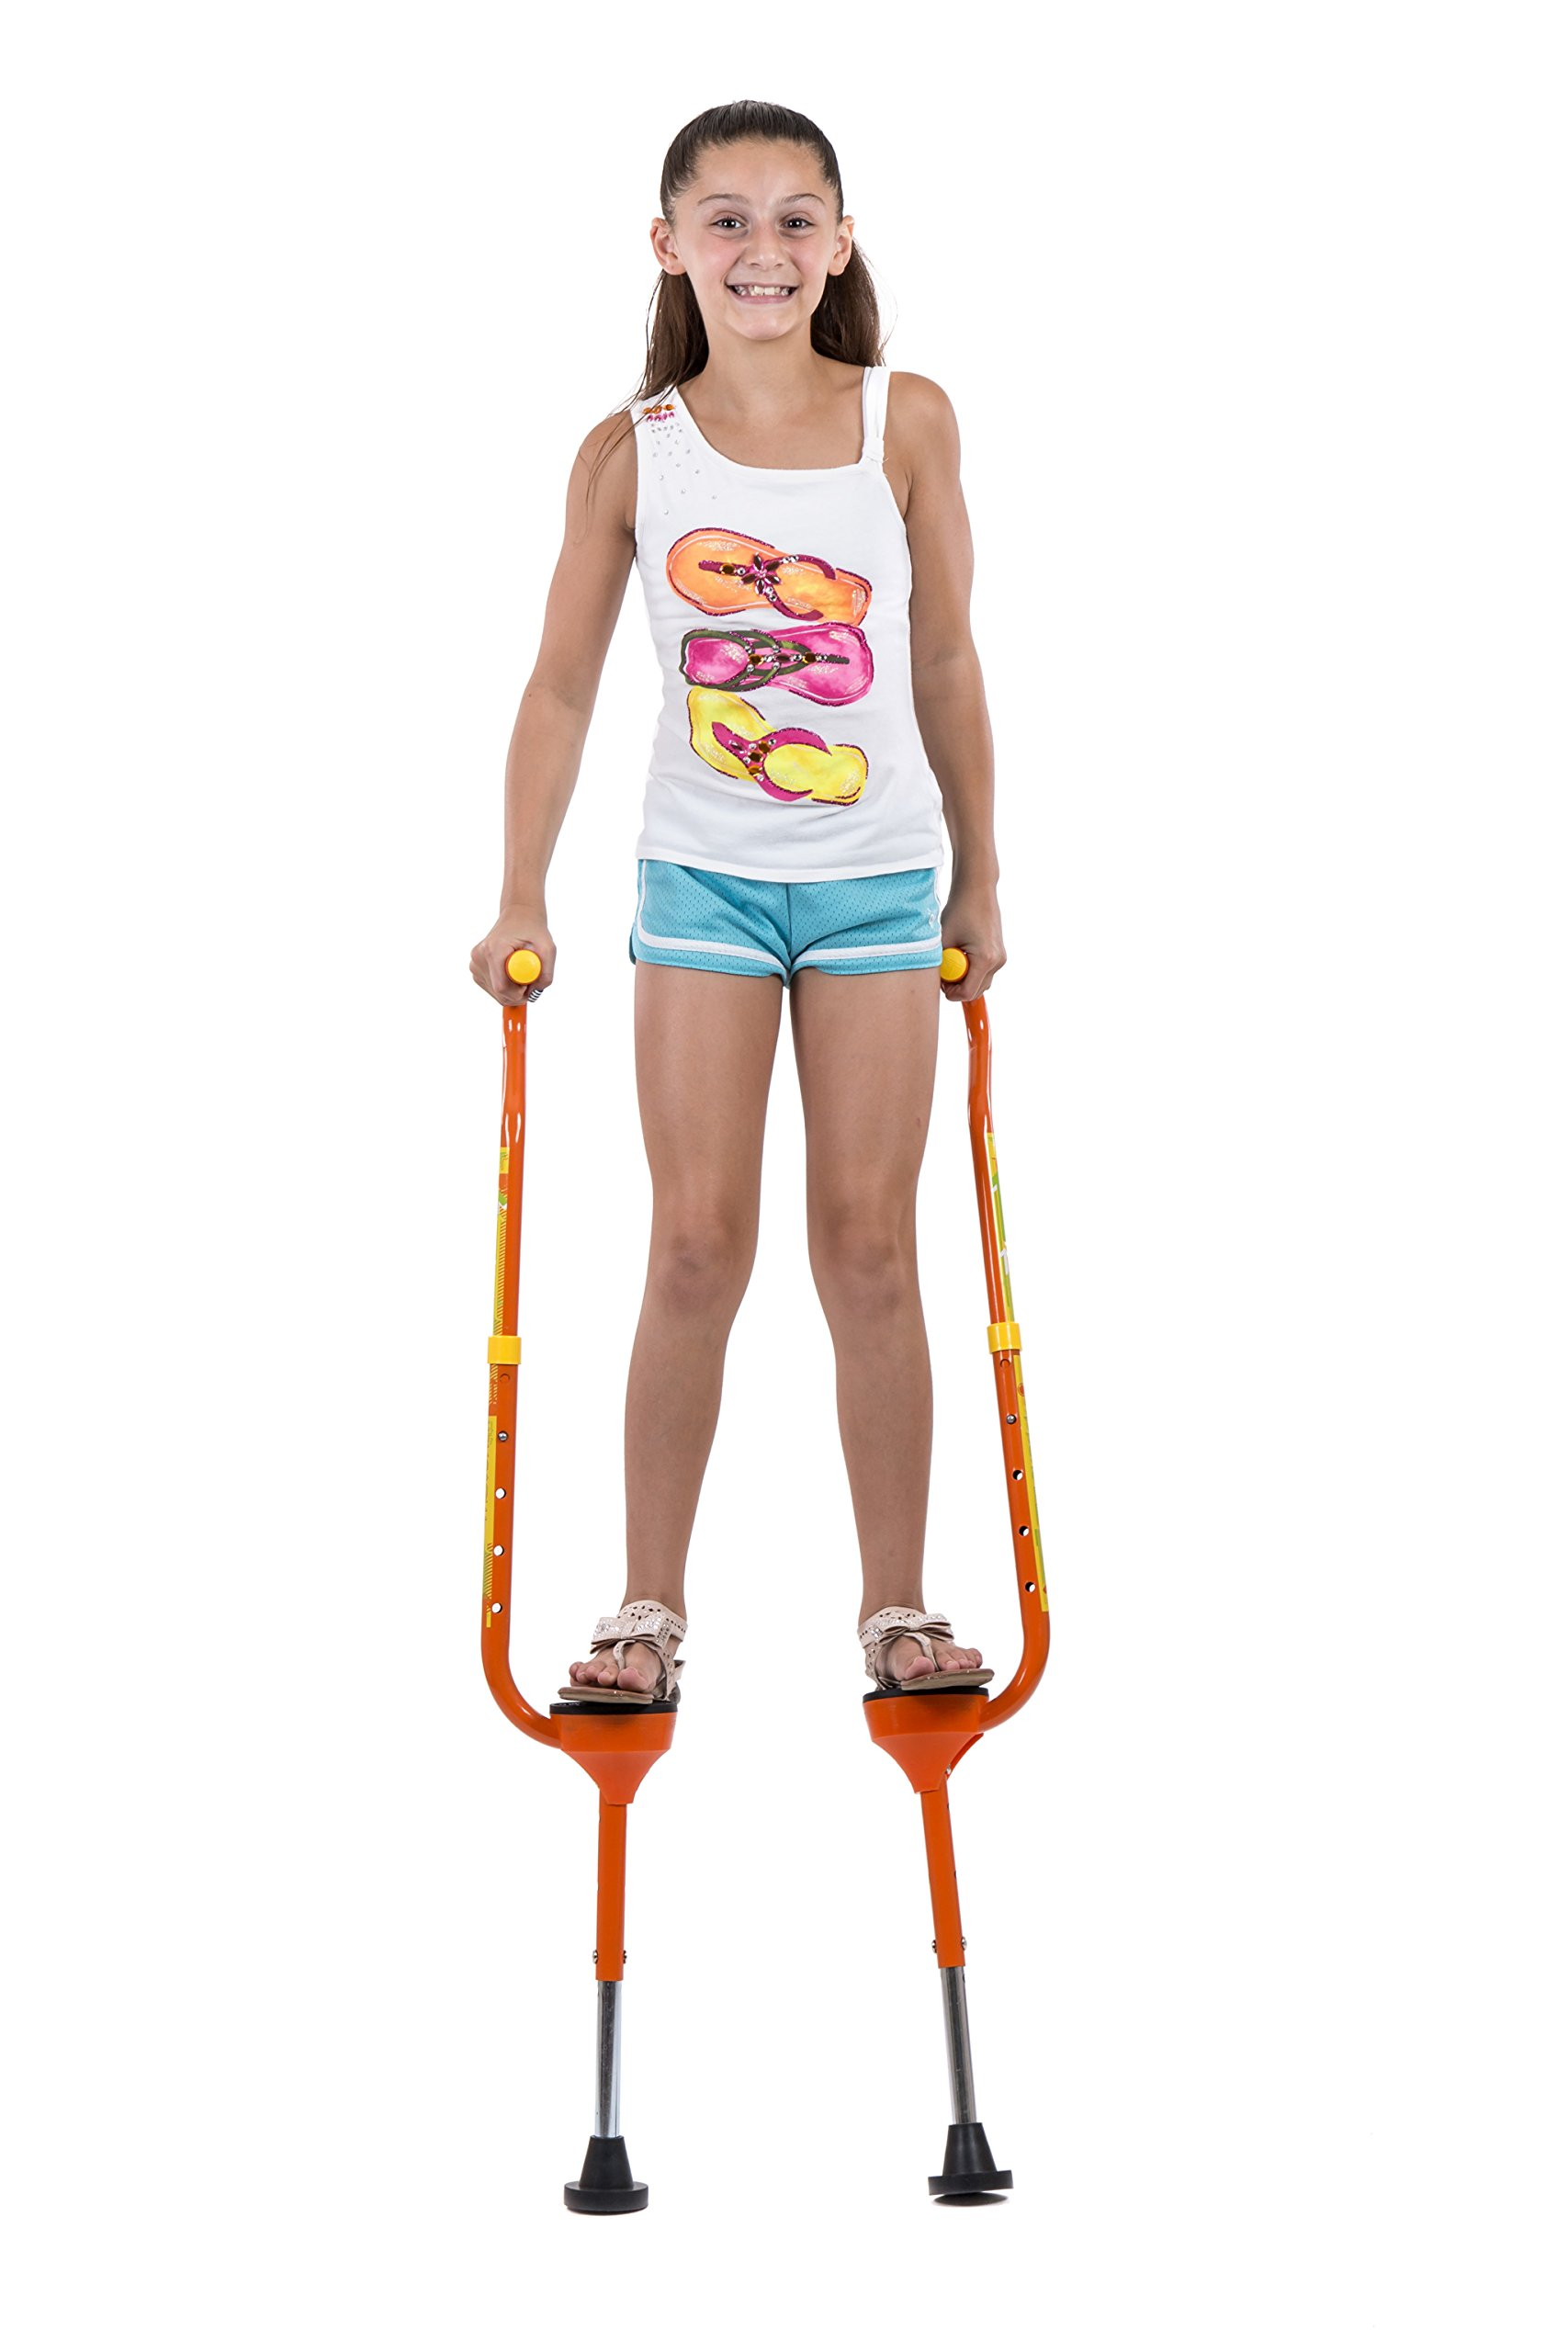 Flybar(R Maverick Small Stilts - Yellow (Weight Limit 190 lbs) by Flybar (Image #1)